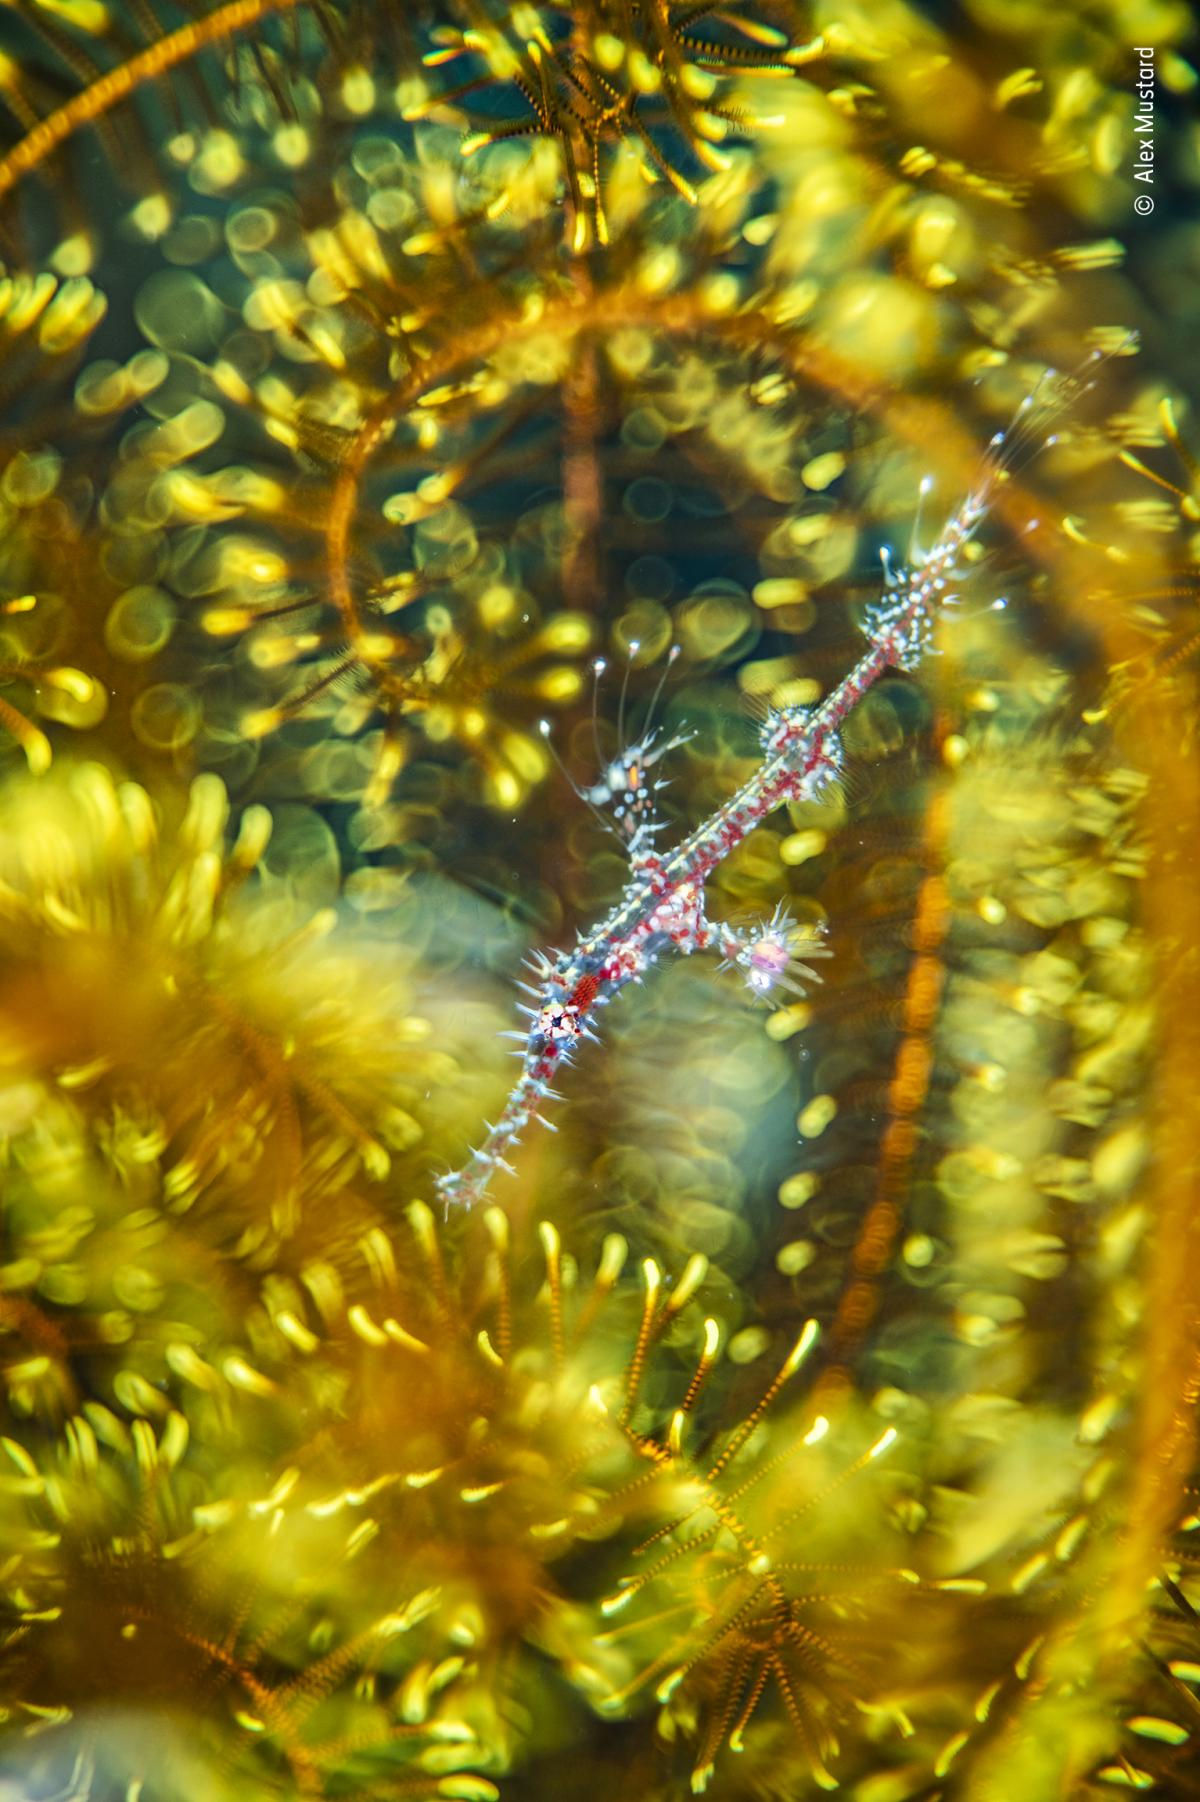 Bedazzled by Alex Mustard, UK, Winner, Natural Artistry. Alex Mustard finds a ghost pipefish hiding among the arms of a feather star. Mustard had always wanted to capture this image of a juvenile ghost pipefish but usually only found darker adults on matc